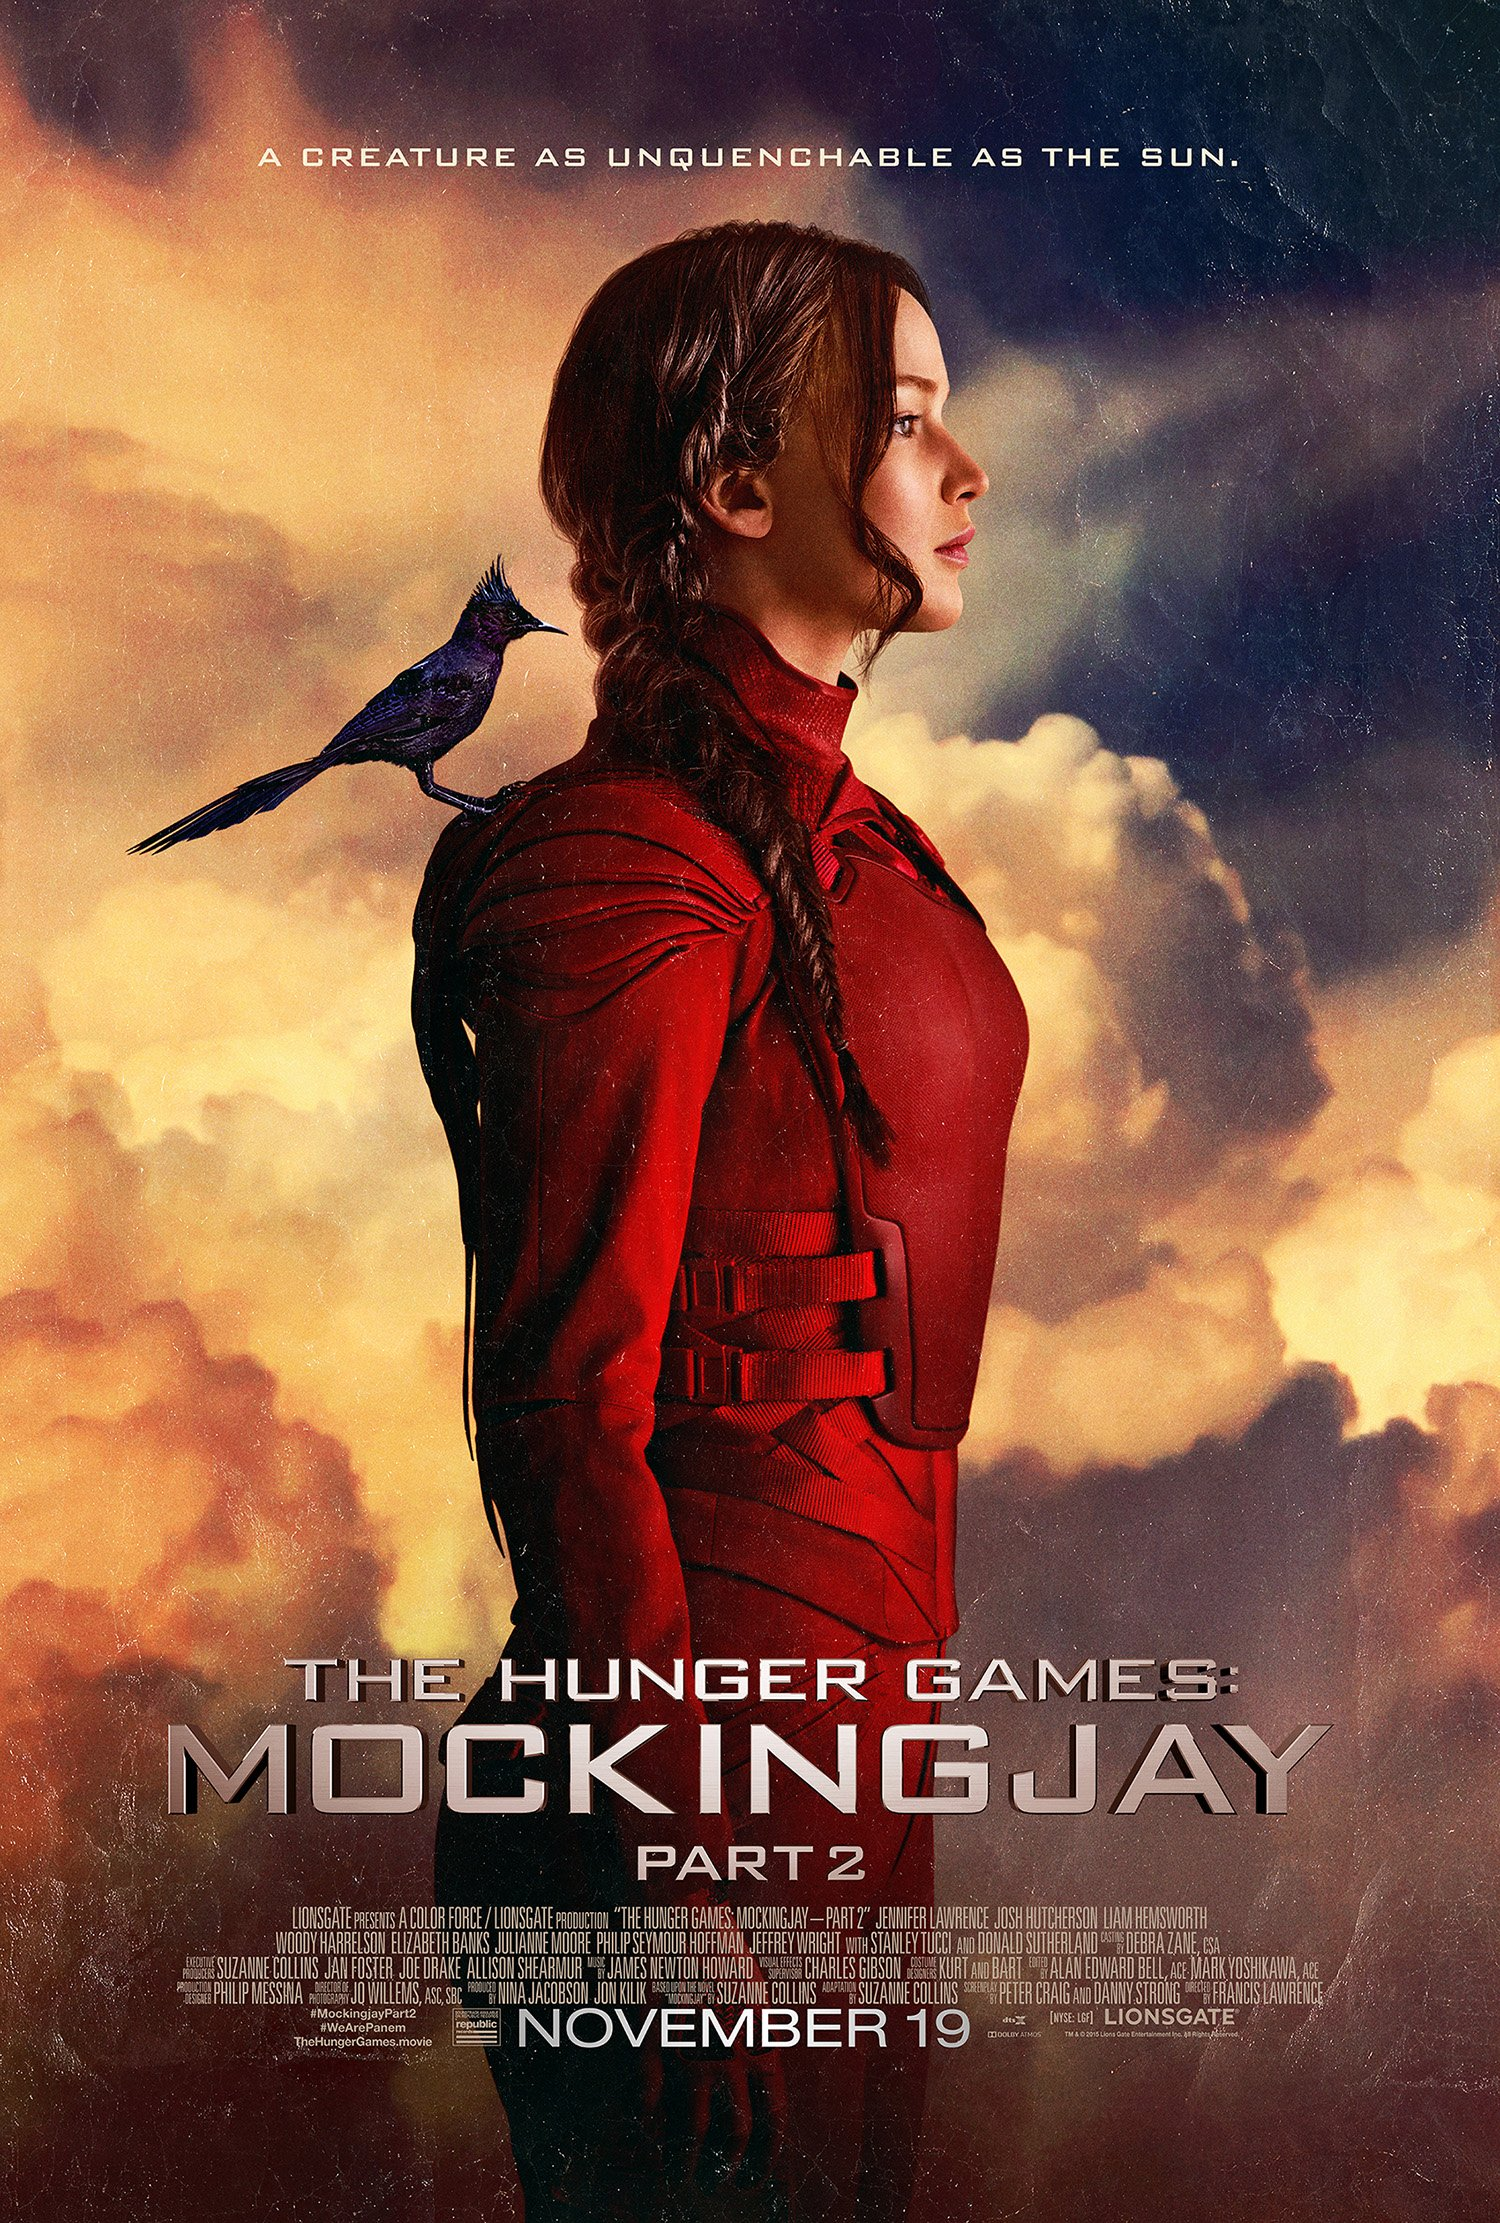 It was all for Prim – the Mockingjay poster